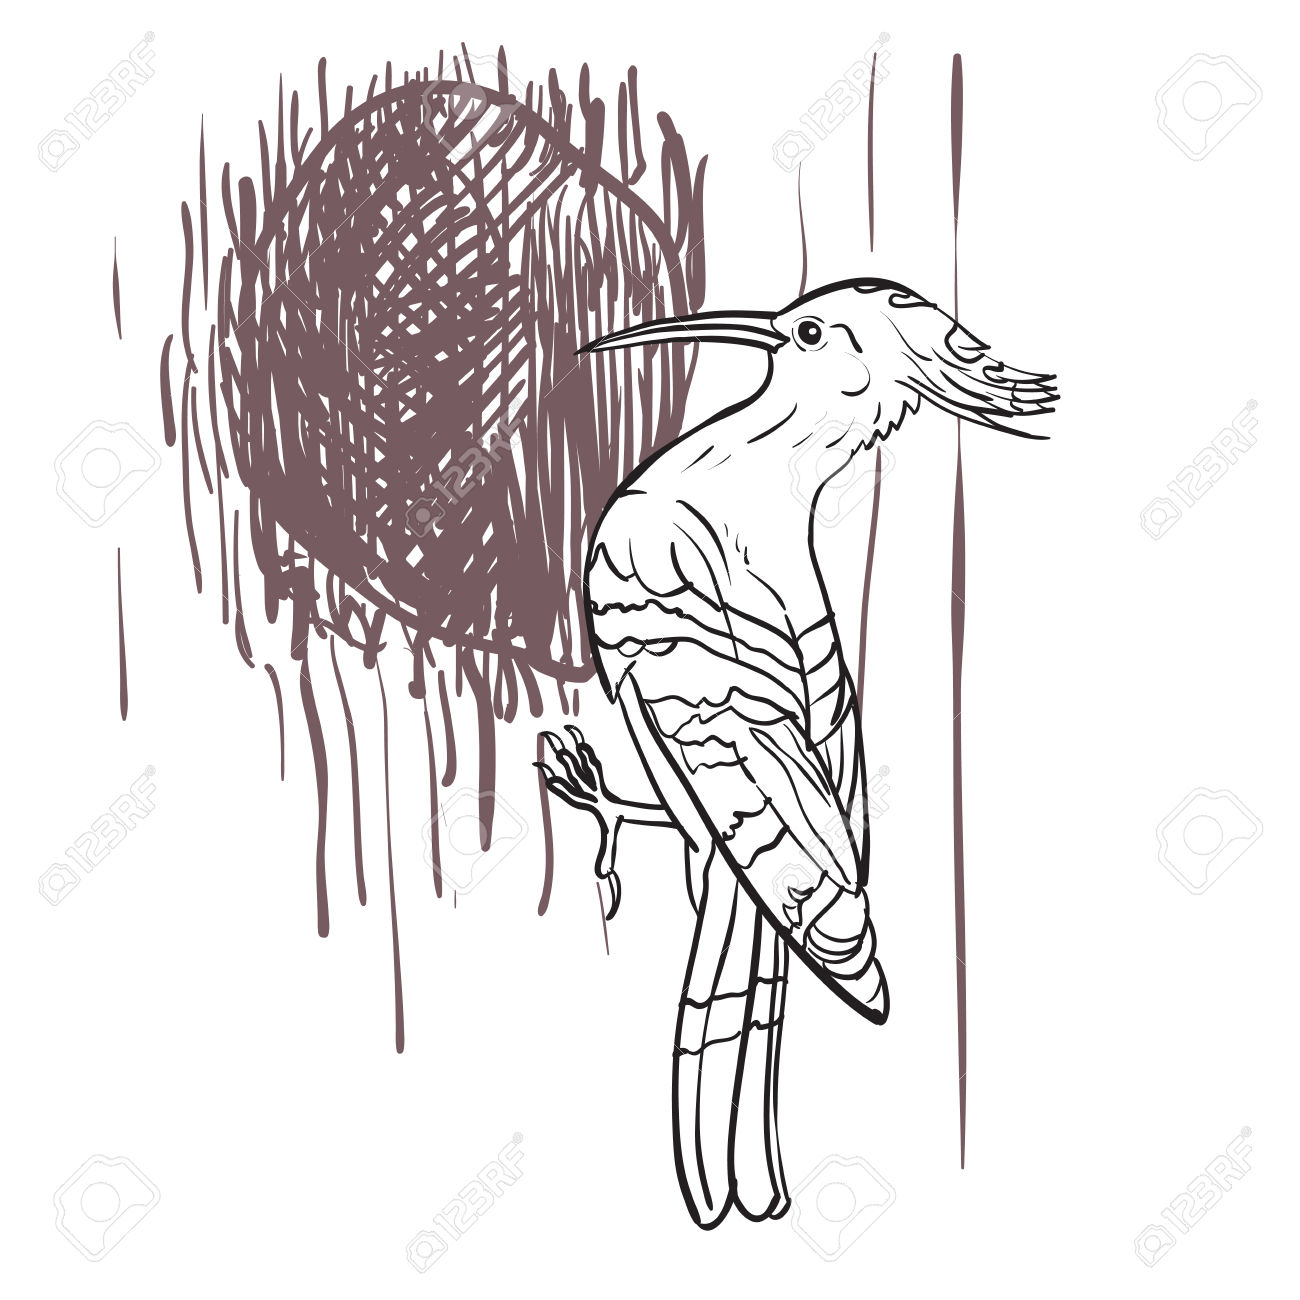 Drawing Of Woodpecker Bird With Hole On Tree Royalty Free Cliparts.